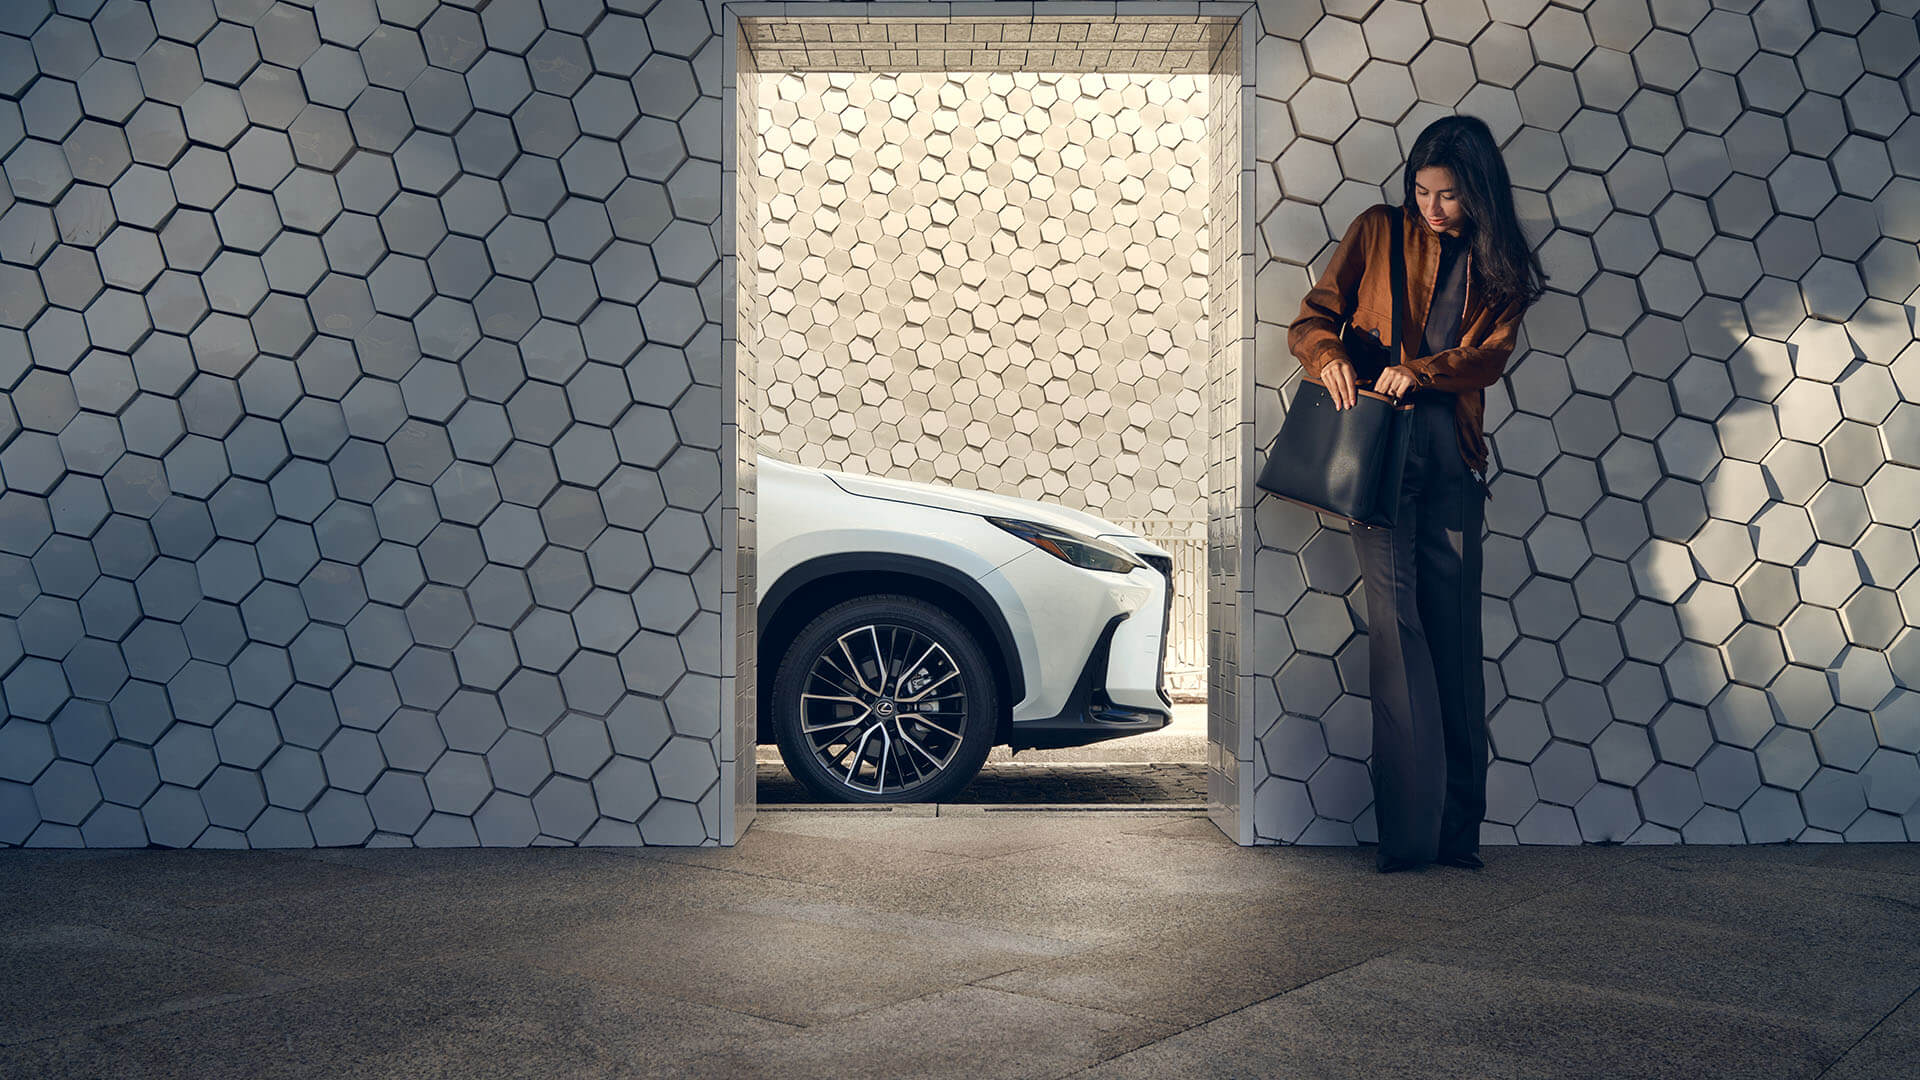 2021 nx overview gallery lifestyle 03